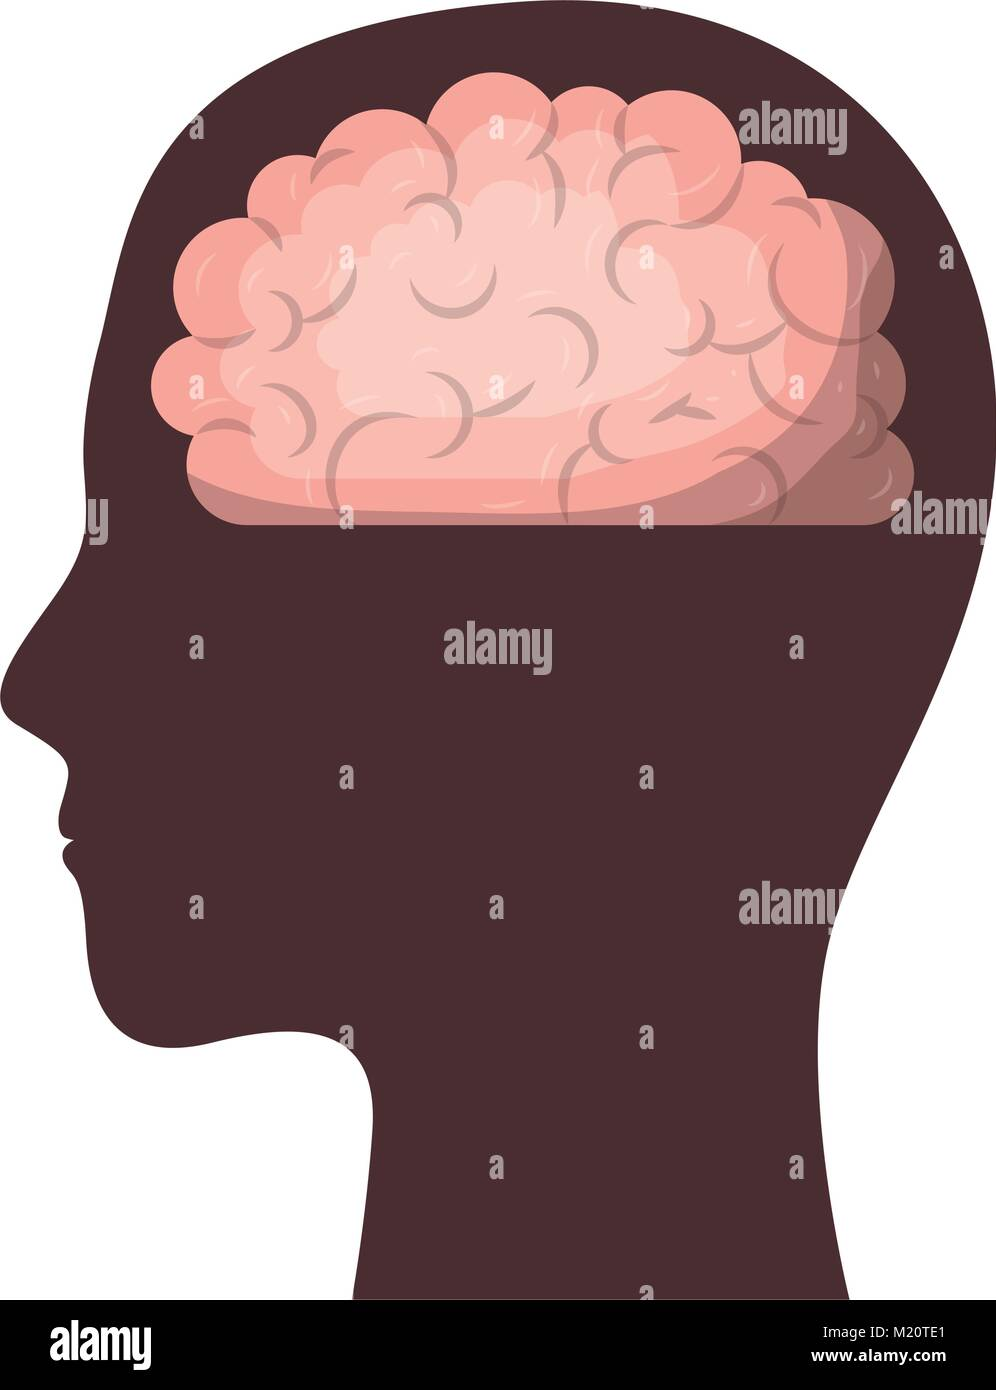 hight resolution of human face brown silhouette with brain inside in colorful silhouette